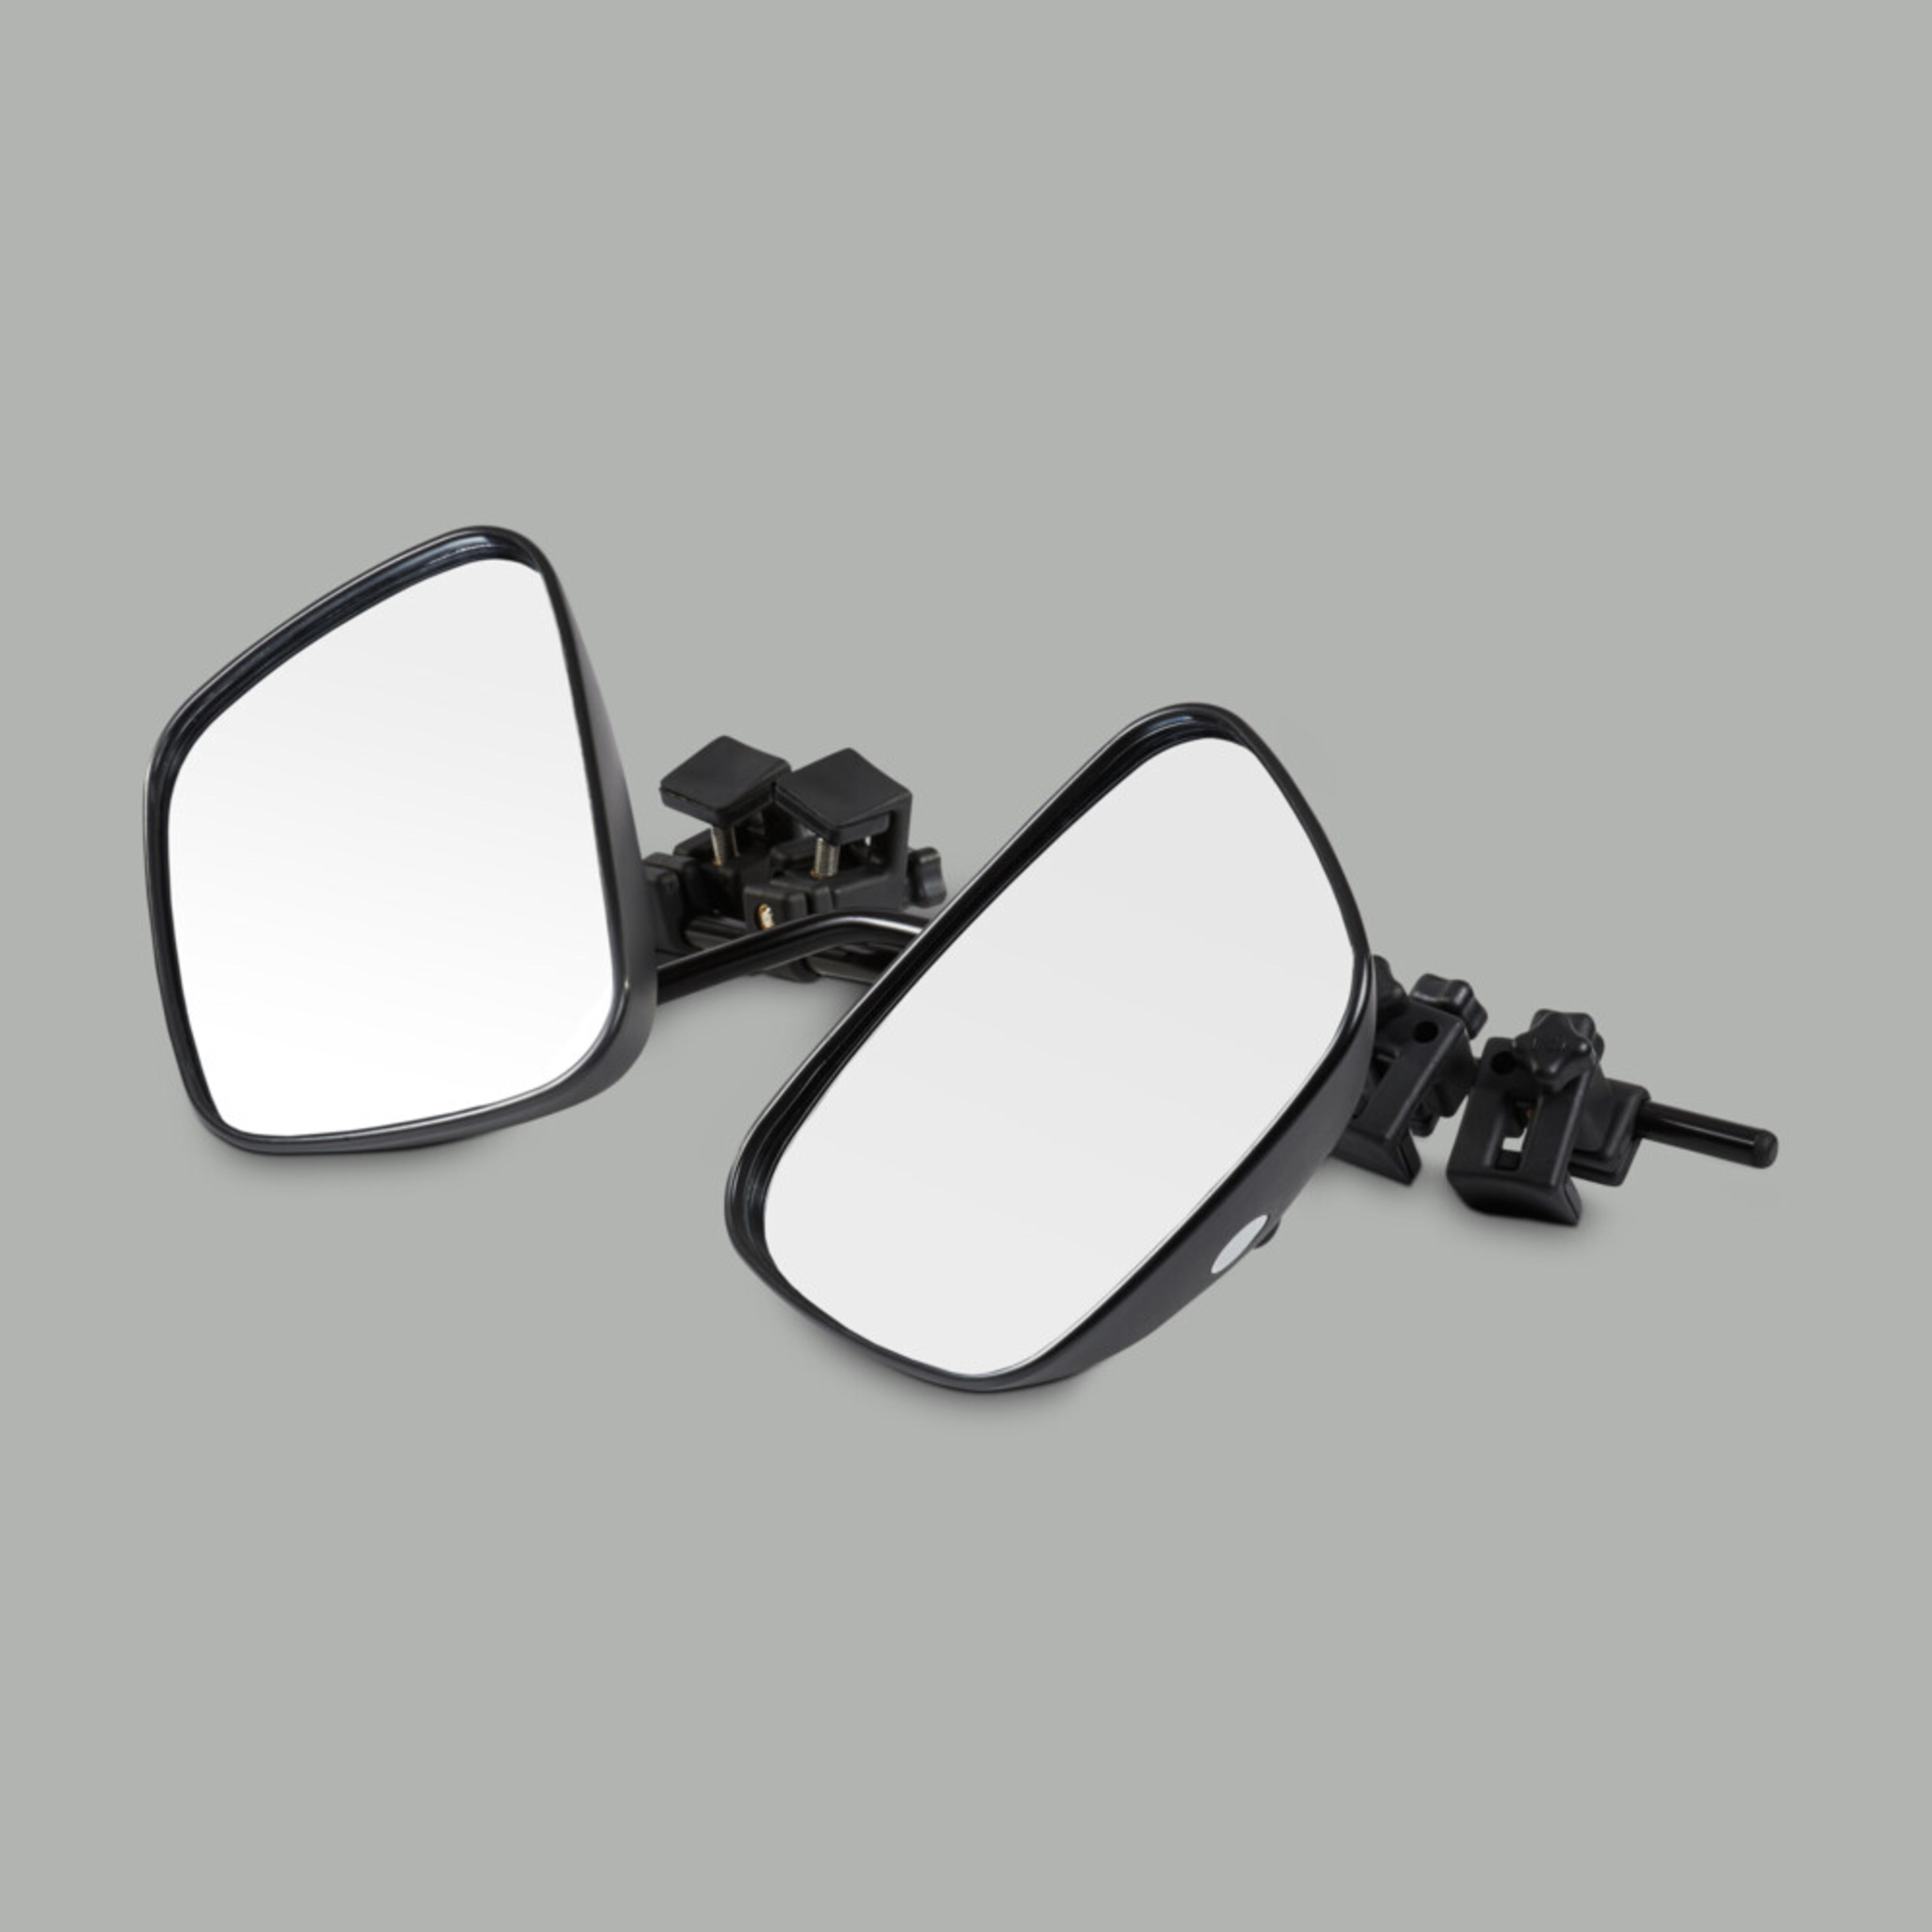 Milenco Grand Aero wide mirror